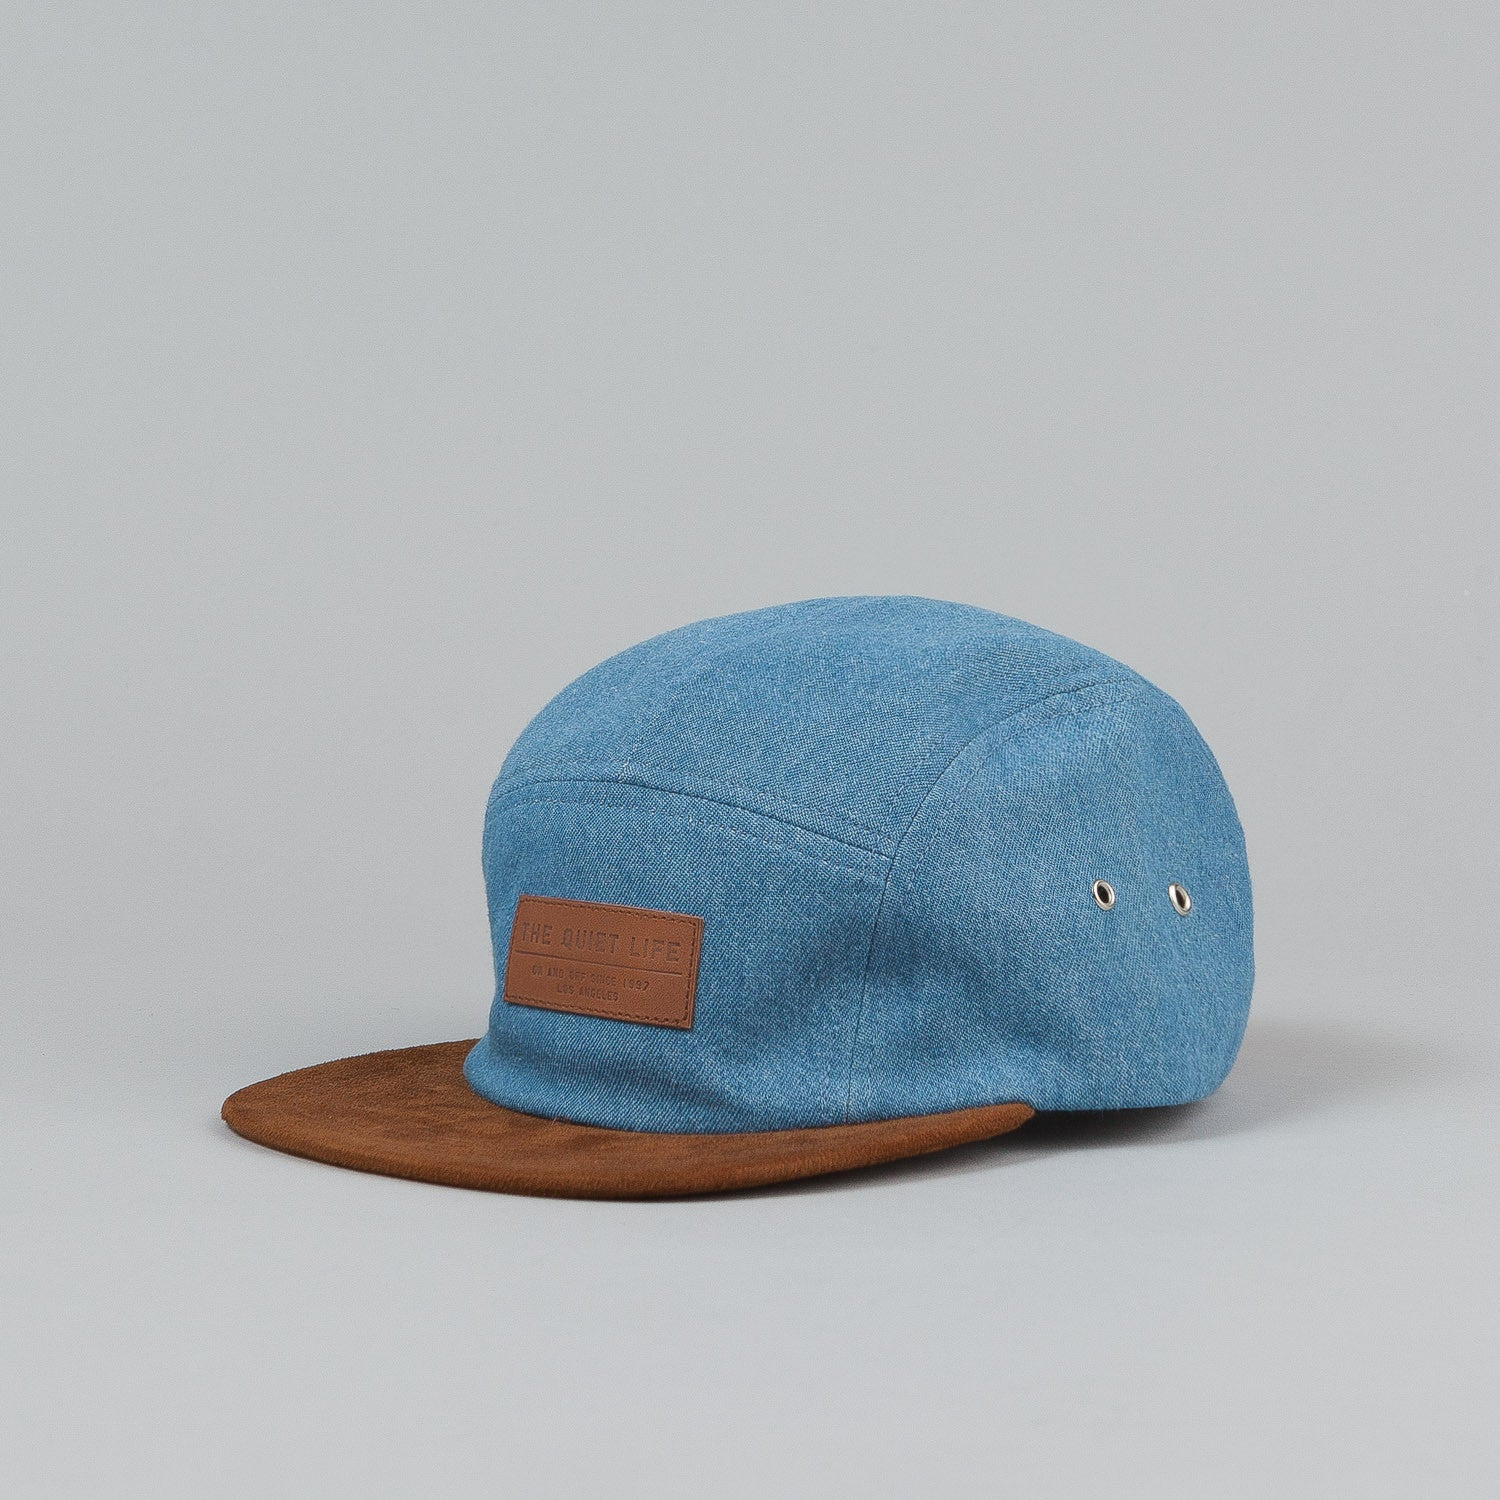 The Quiet Life Light Denim 5 Panel Cap